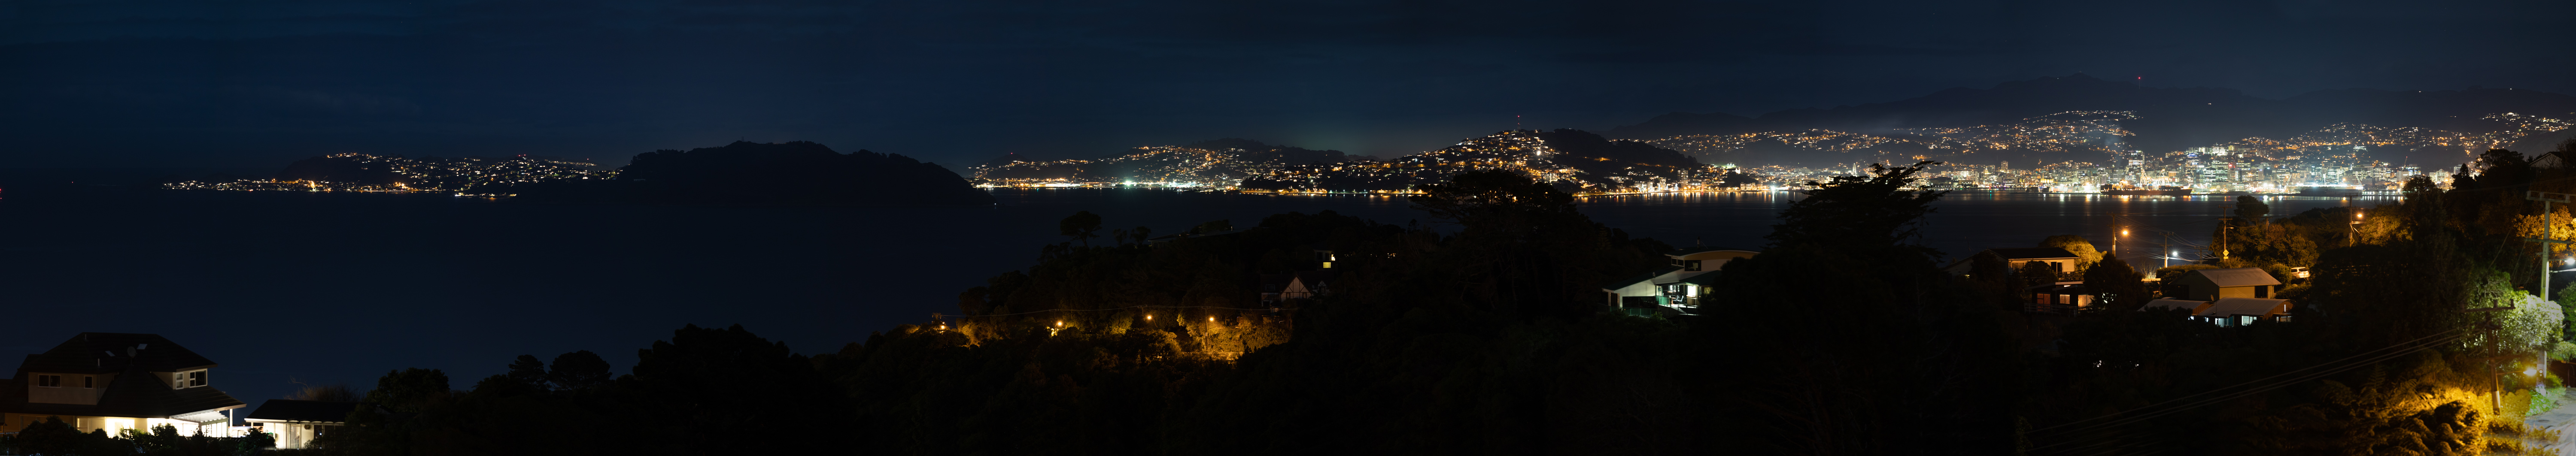 KoroKoro-Wellington NightShoot 1469-Pano